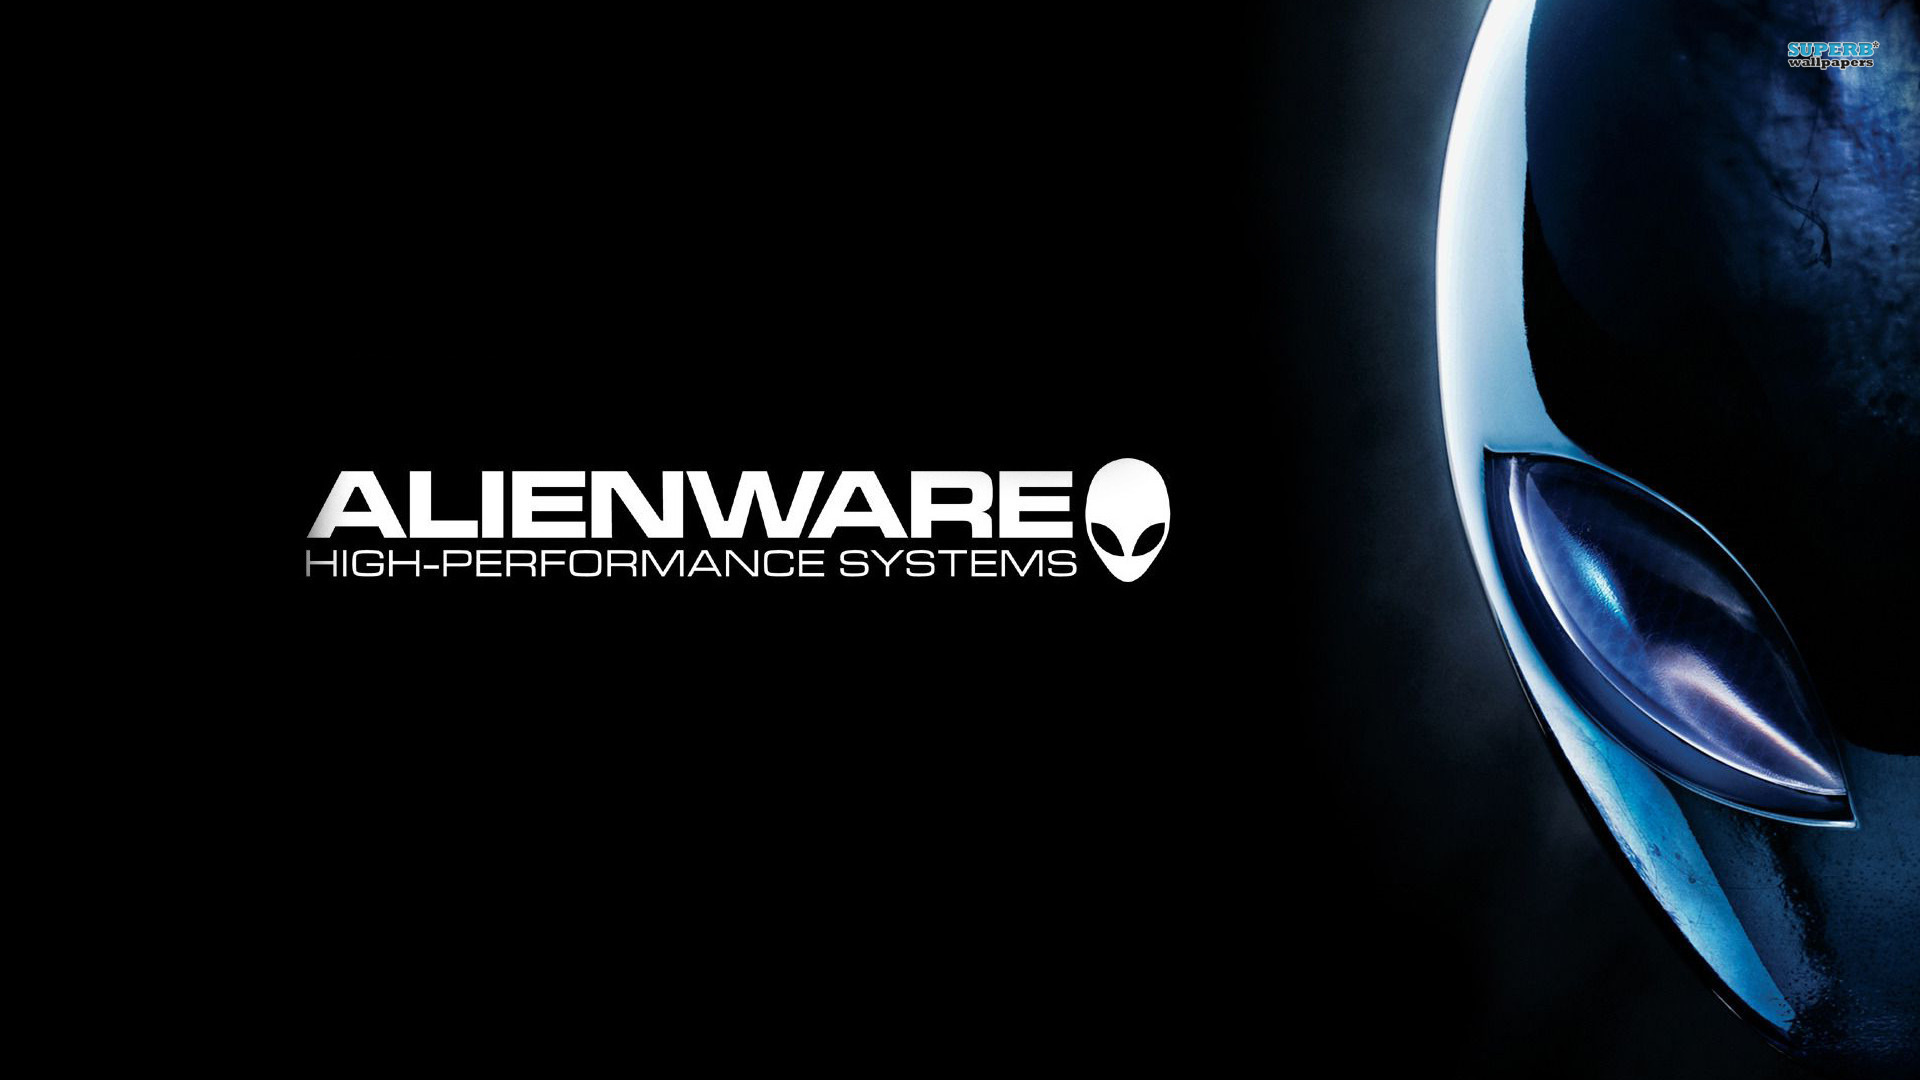 20 Spectacular Alienware Wallpaper For Desktop 1920x1080